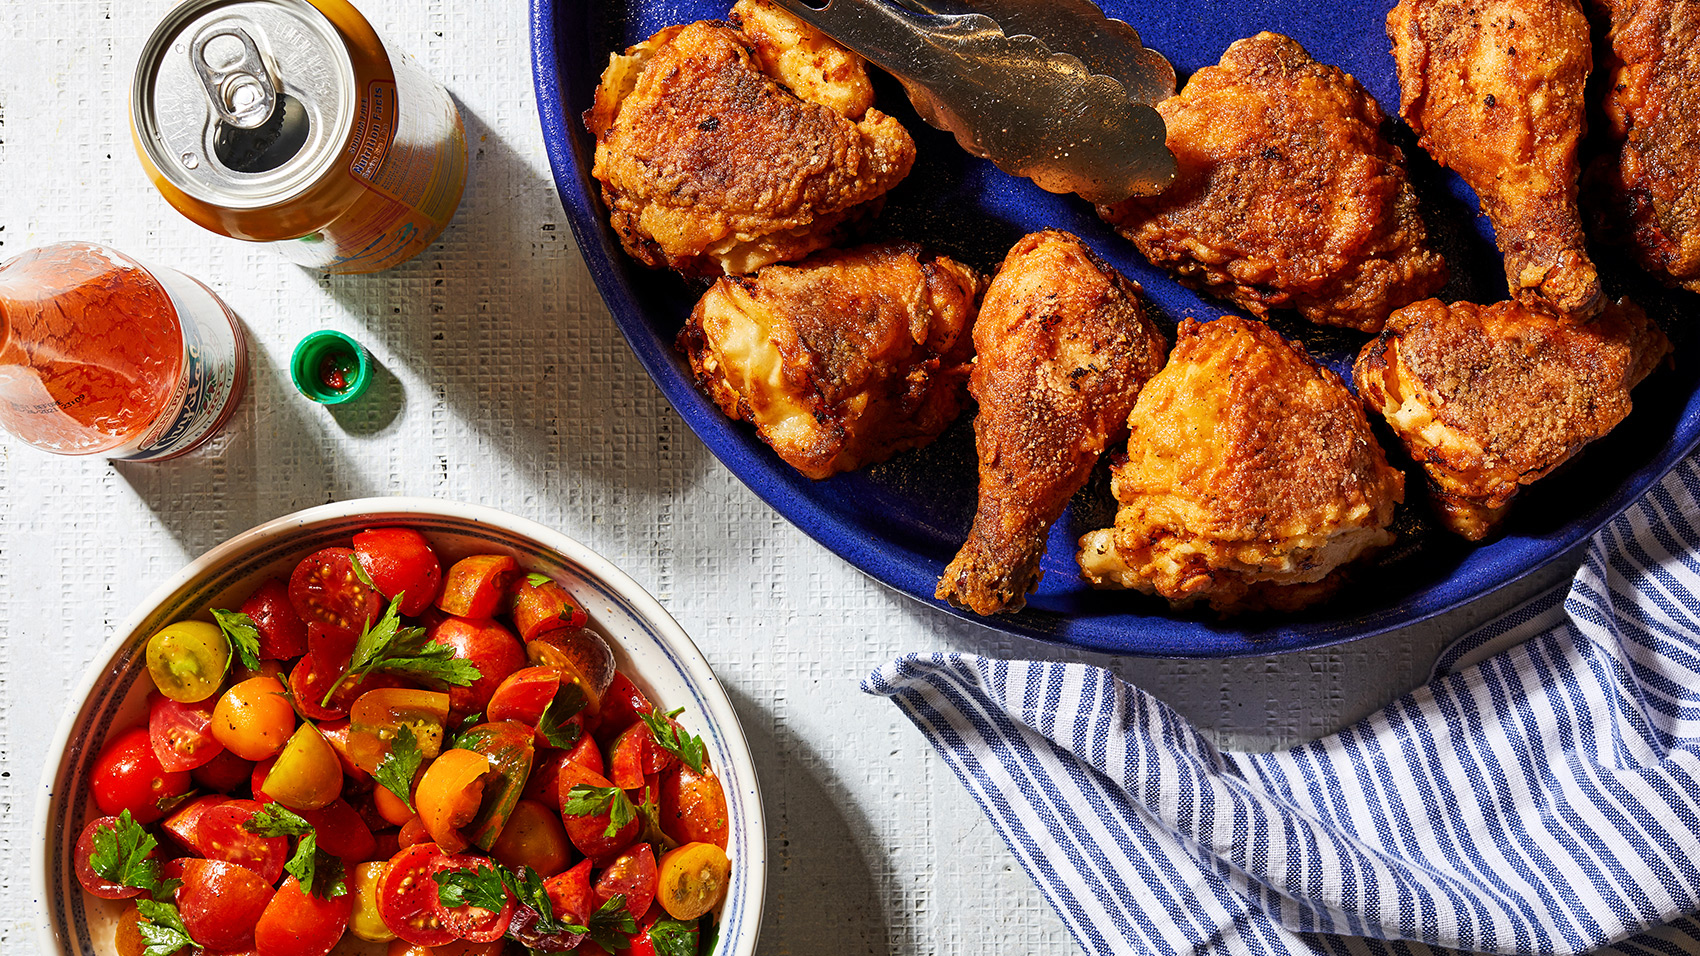 Yes, you can have crispy, juicy fried chicken at home without a trip to the drive-through